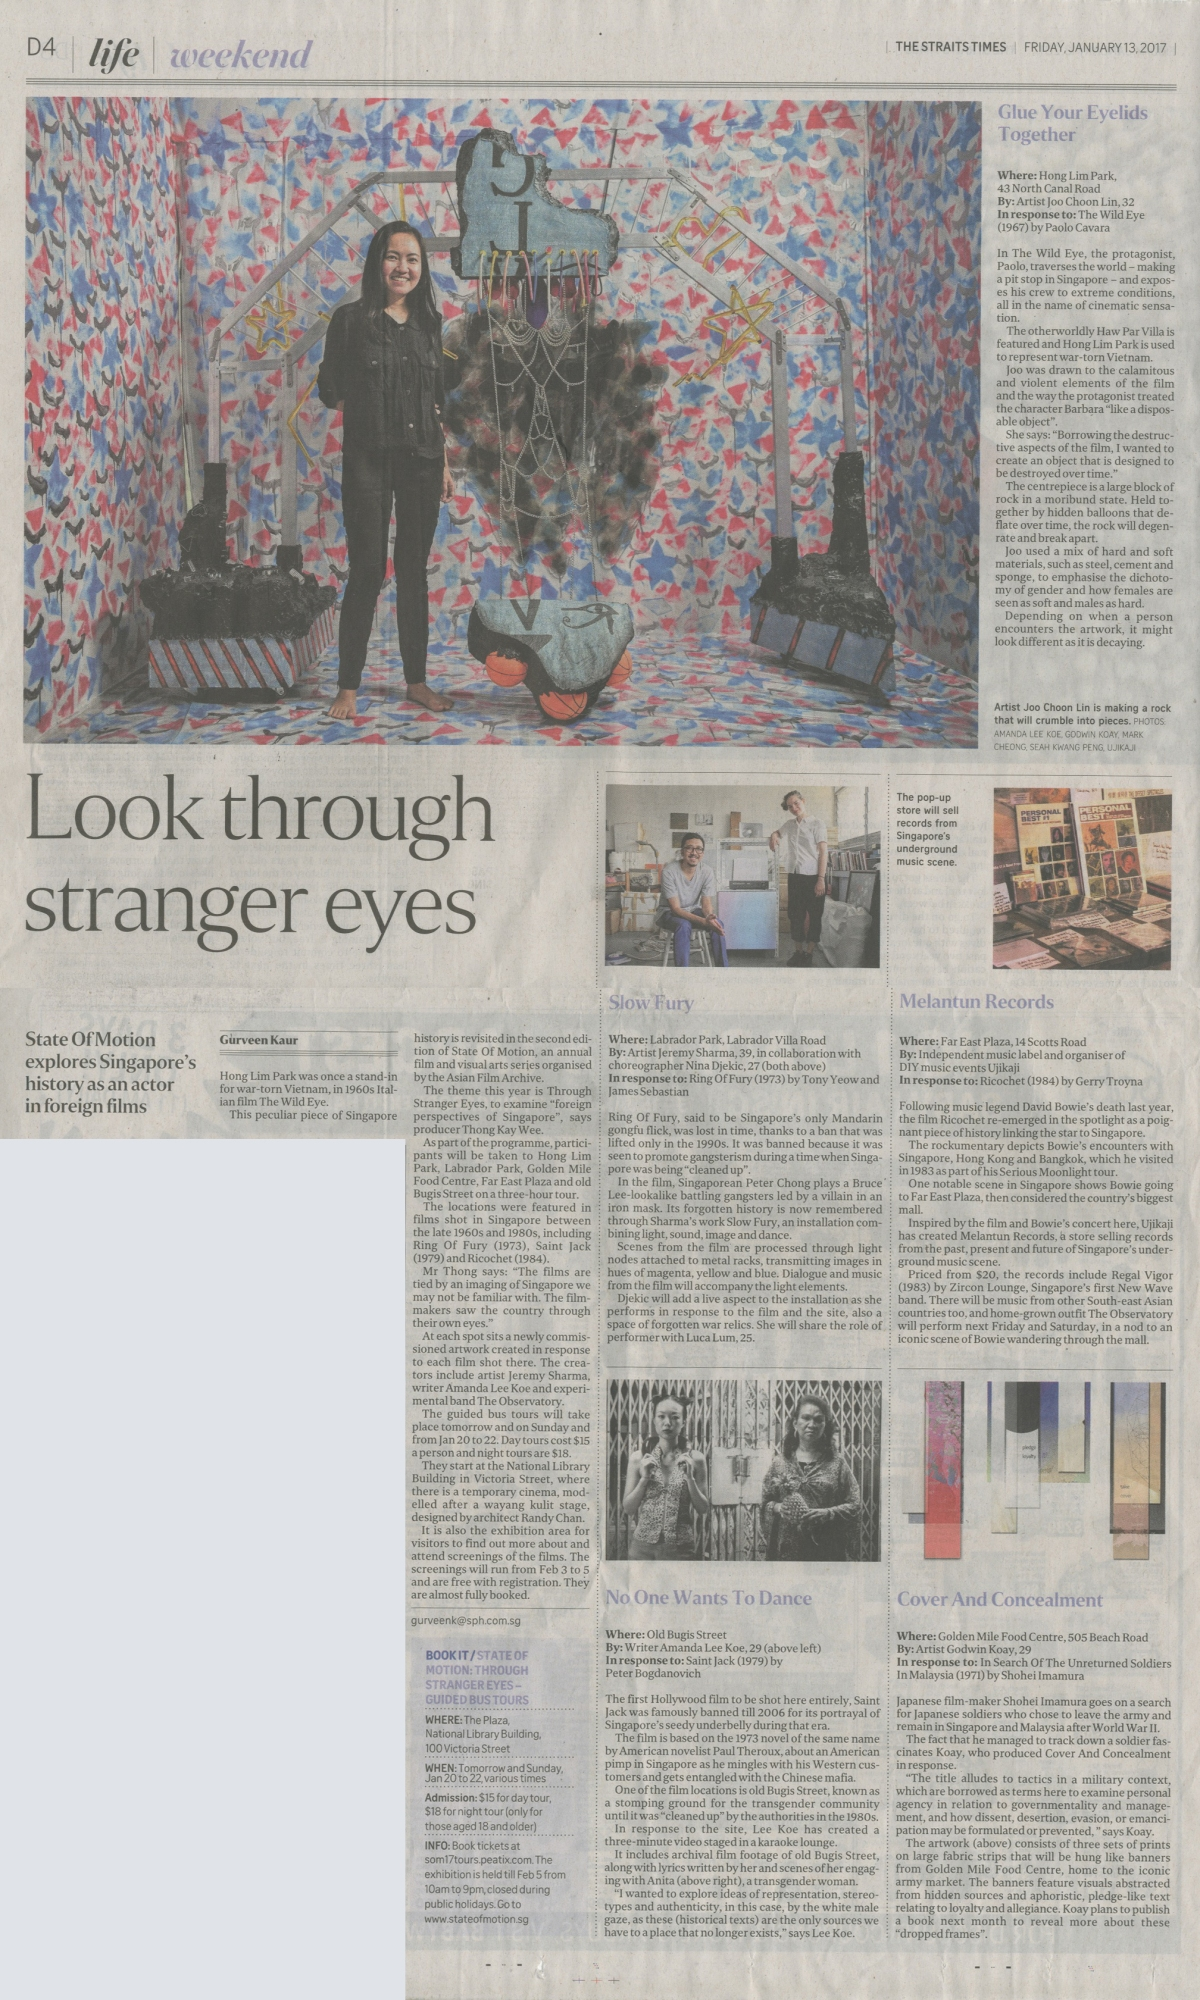 look-through-stranger-eyes-article-scan